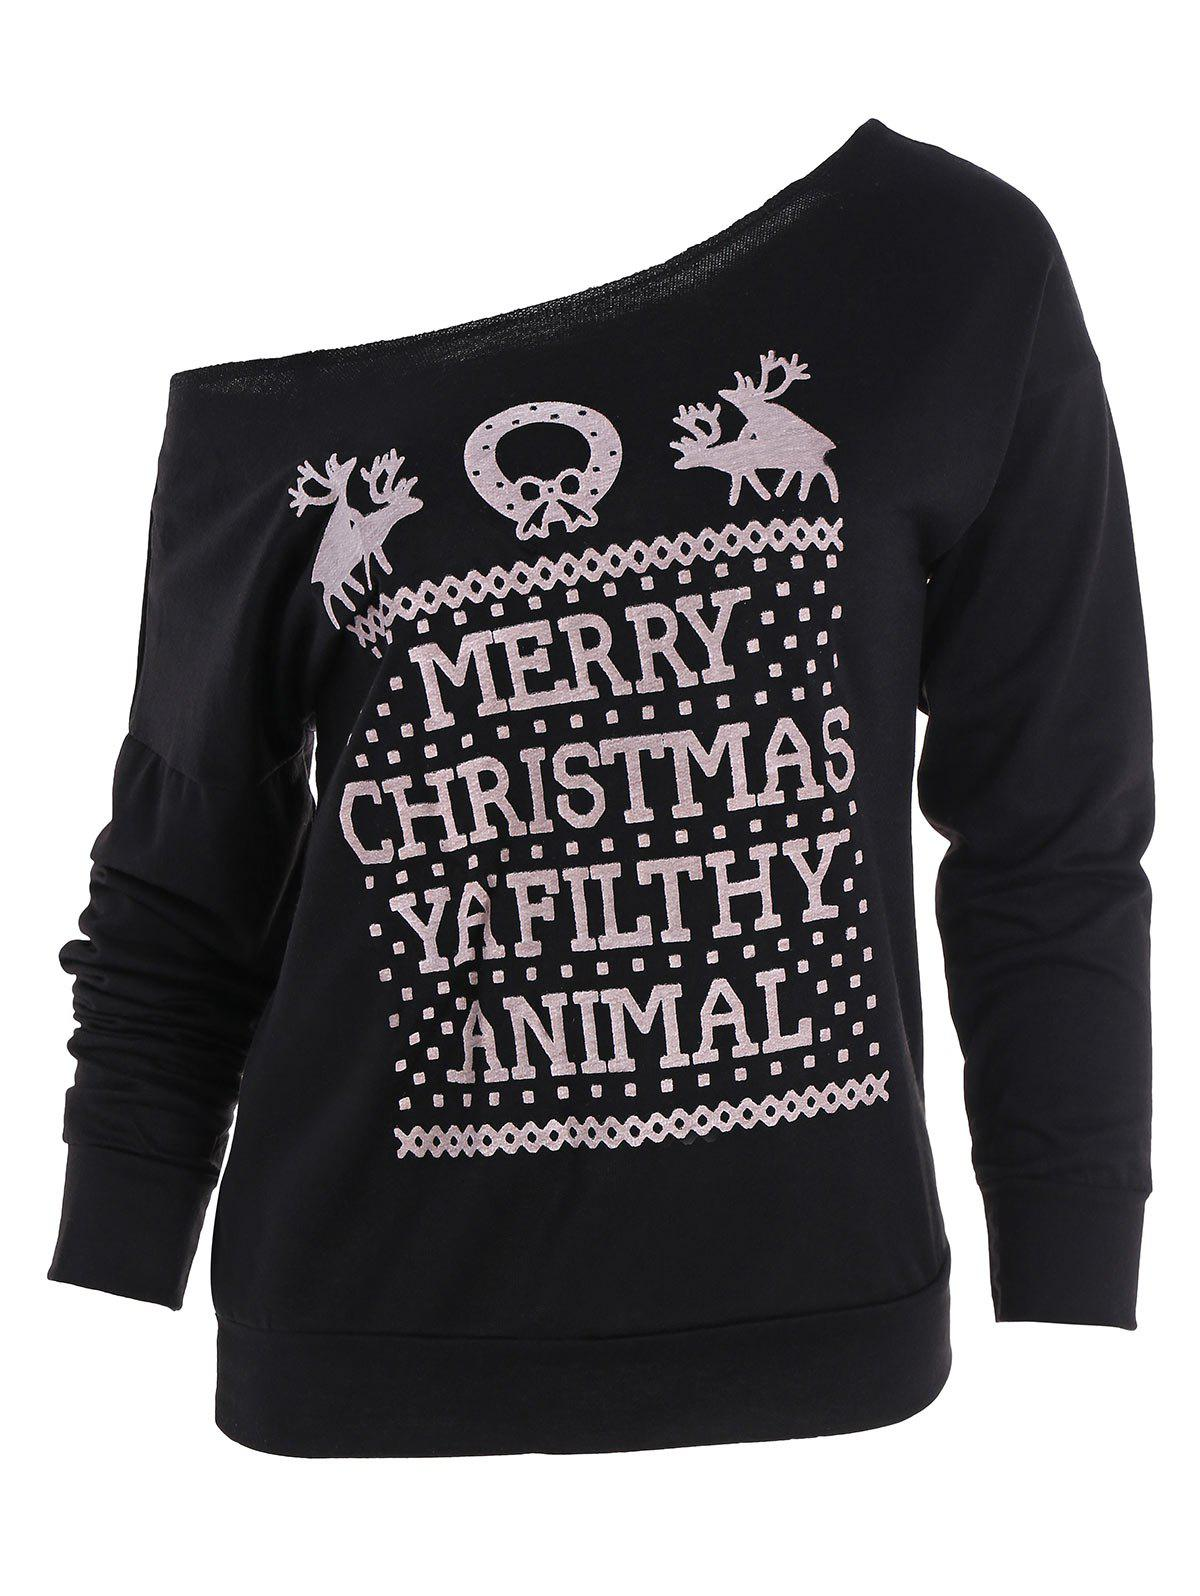 Merry Christmas Print Skew Neck Pullover SweatshirtWOMEN<br><br>Size: 2XL; Color: BLACK; Material: Polyester; Shirt Length: Regular; Sleeve Length: Full; Style: Fashion; Pattern Style: Letter; Season: Fall; Weight: 0.4800kg; Package Contents: 1 x Sweatshirt;